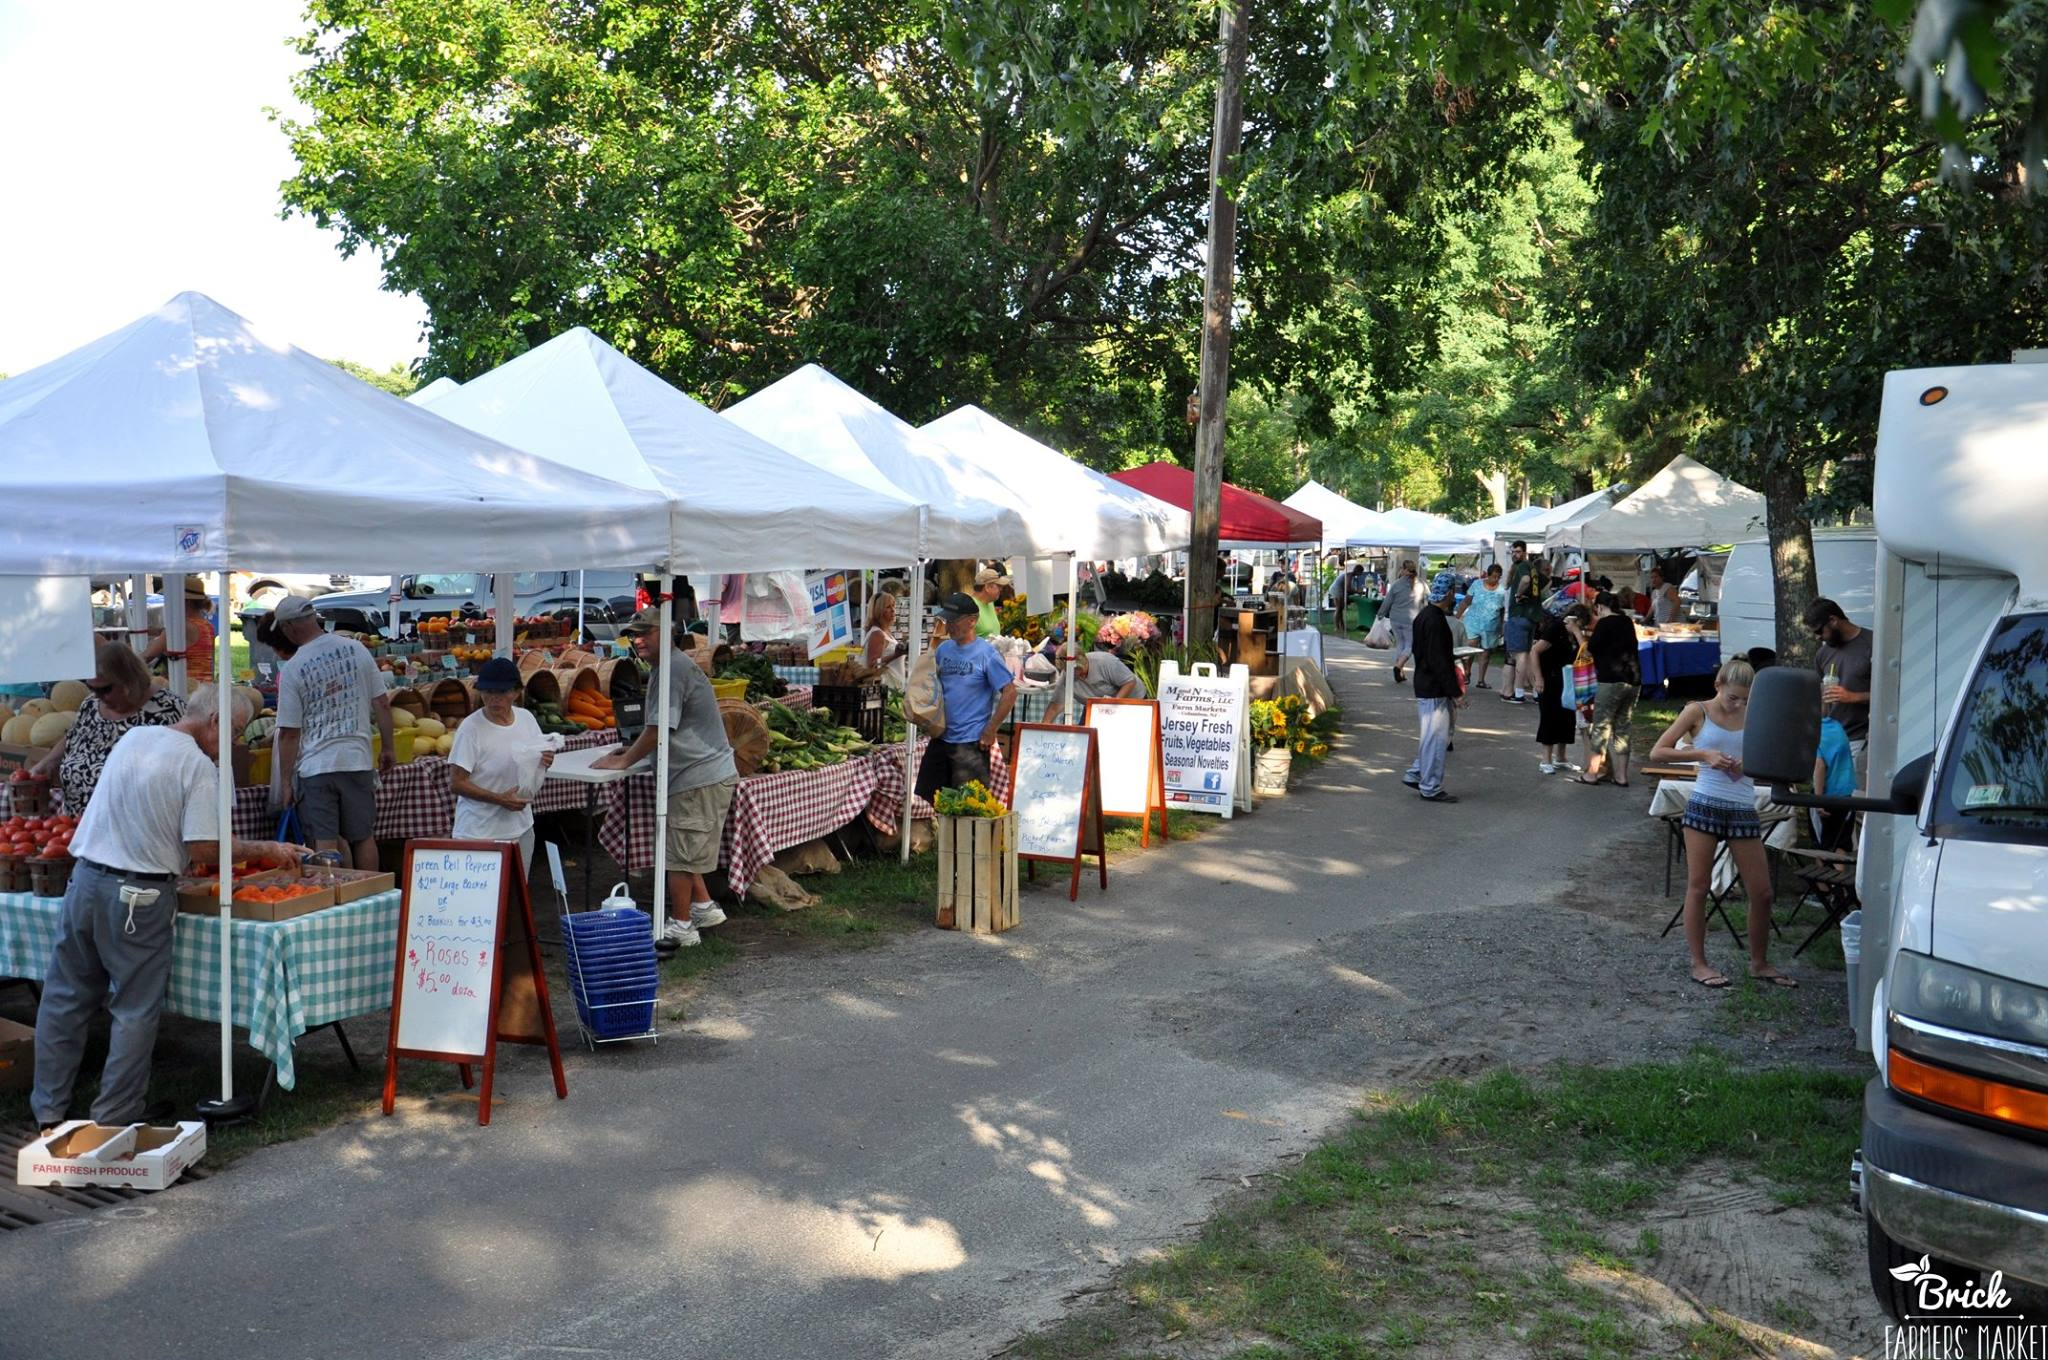 brick farmers' market will return for 2017: here's who'll be there